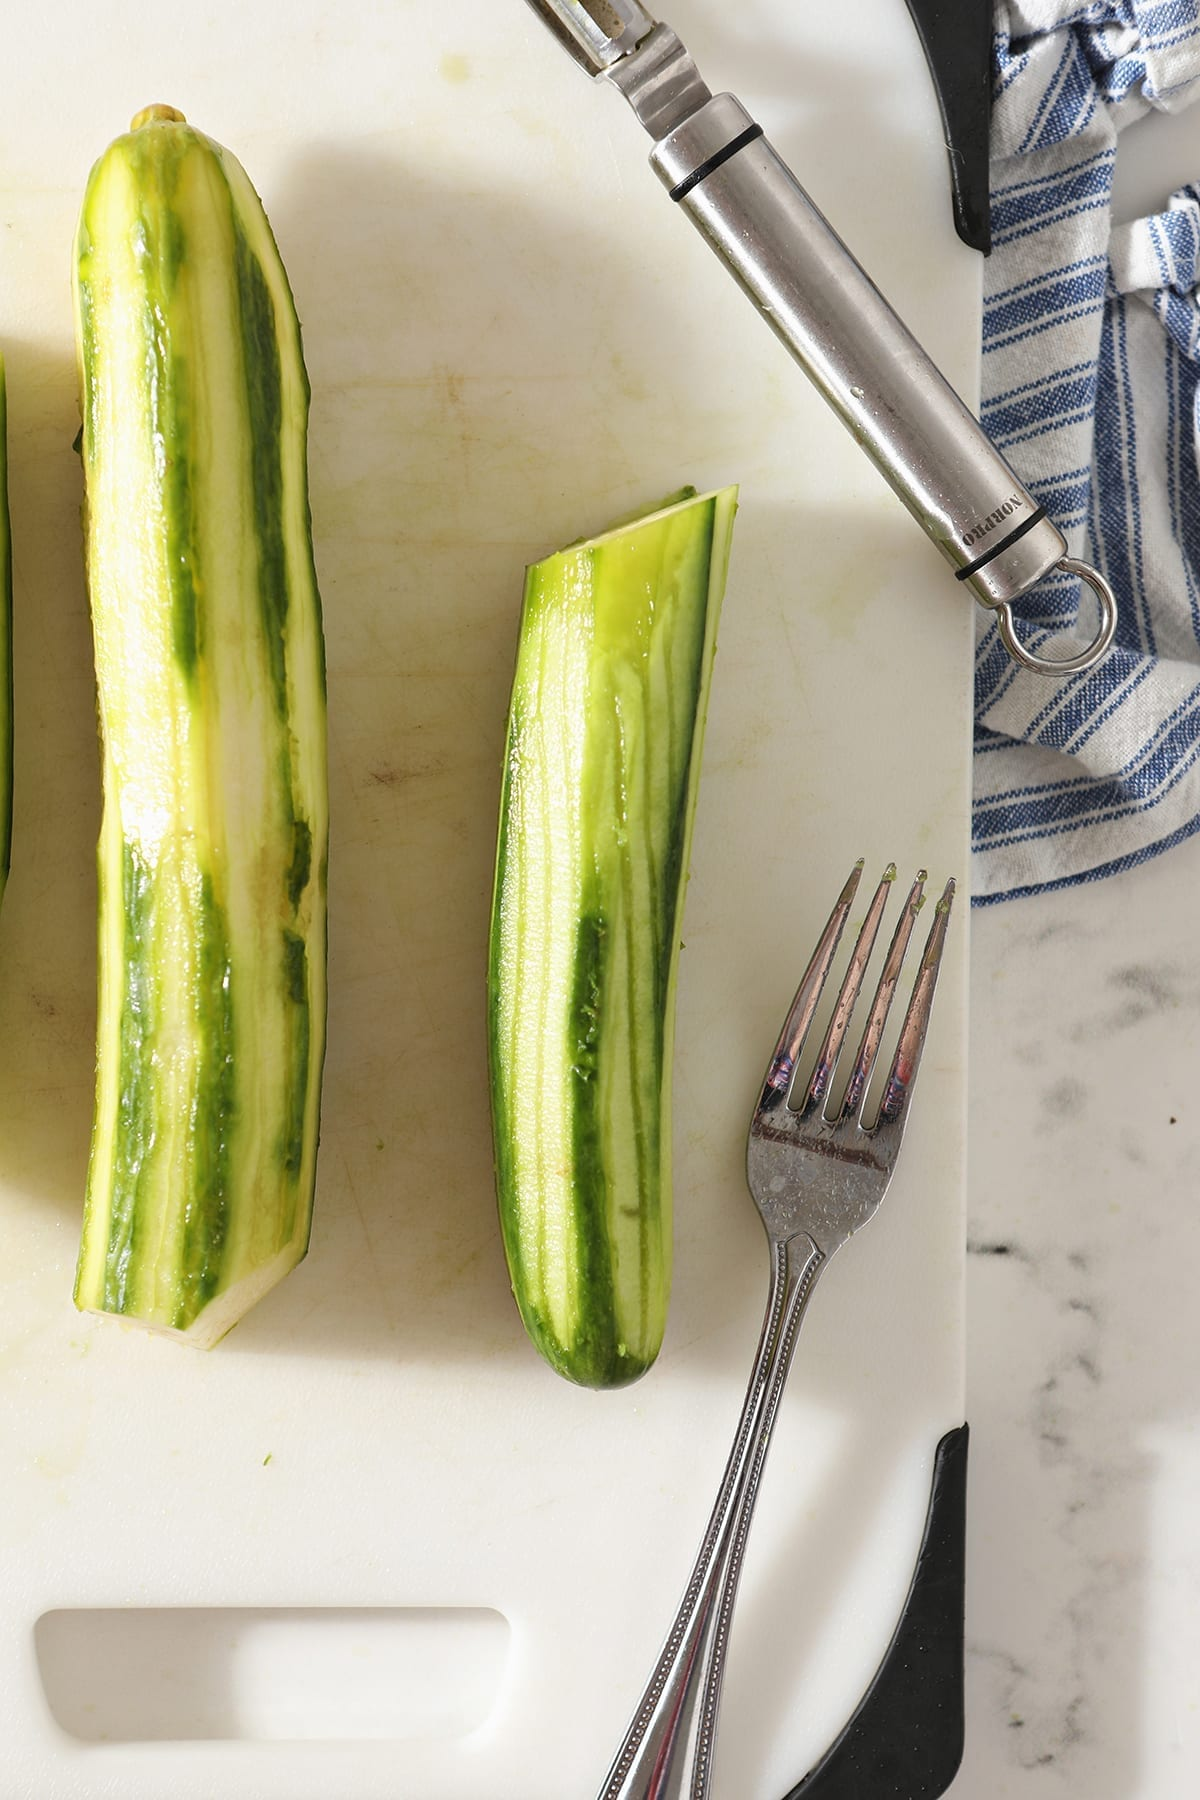 Two cucumbers, peeled and marked with a fork, sit on a white cutting board with a silver fork and a peeler